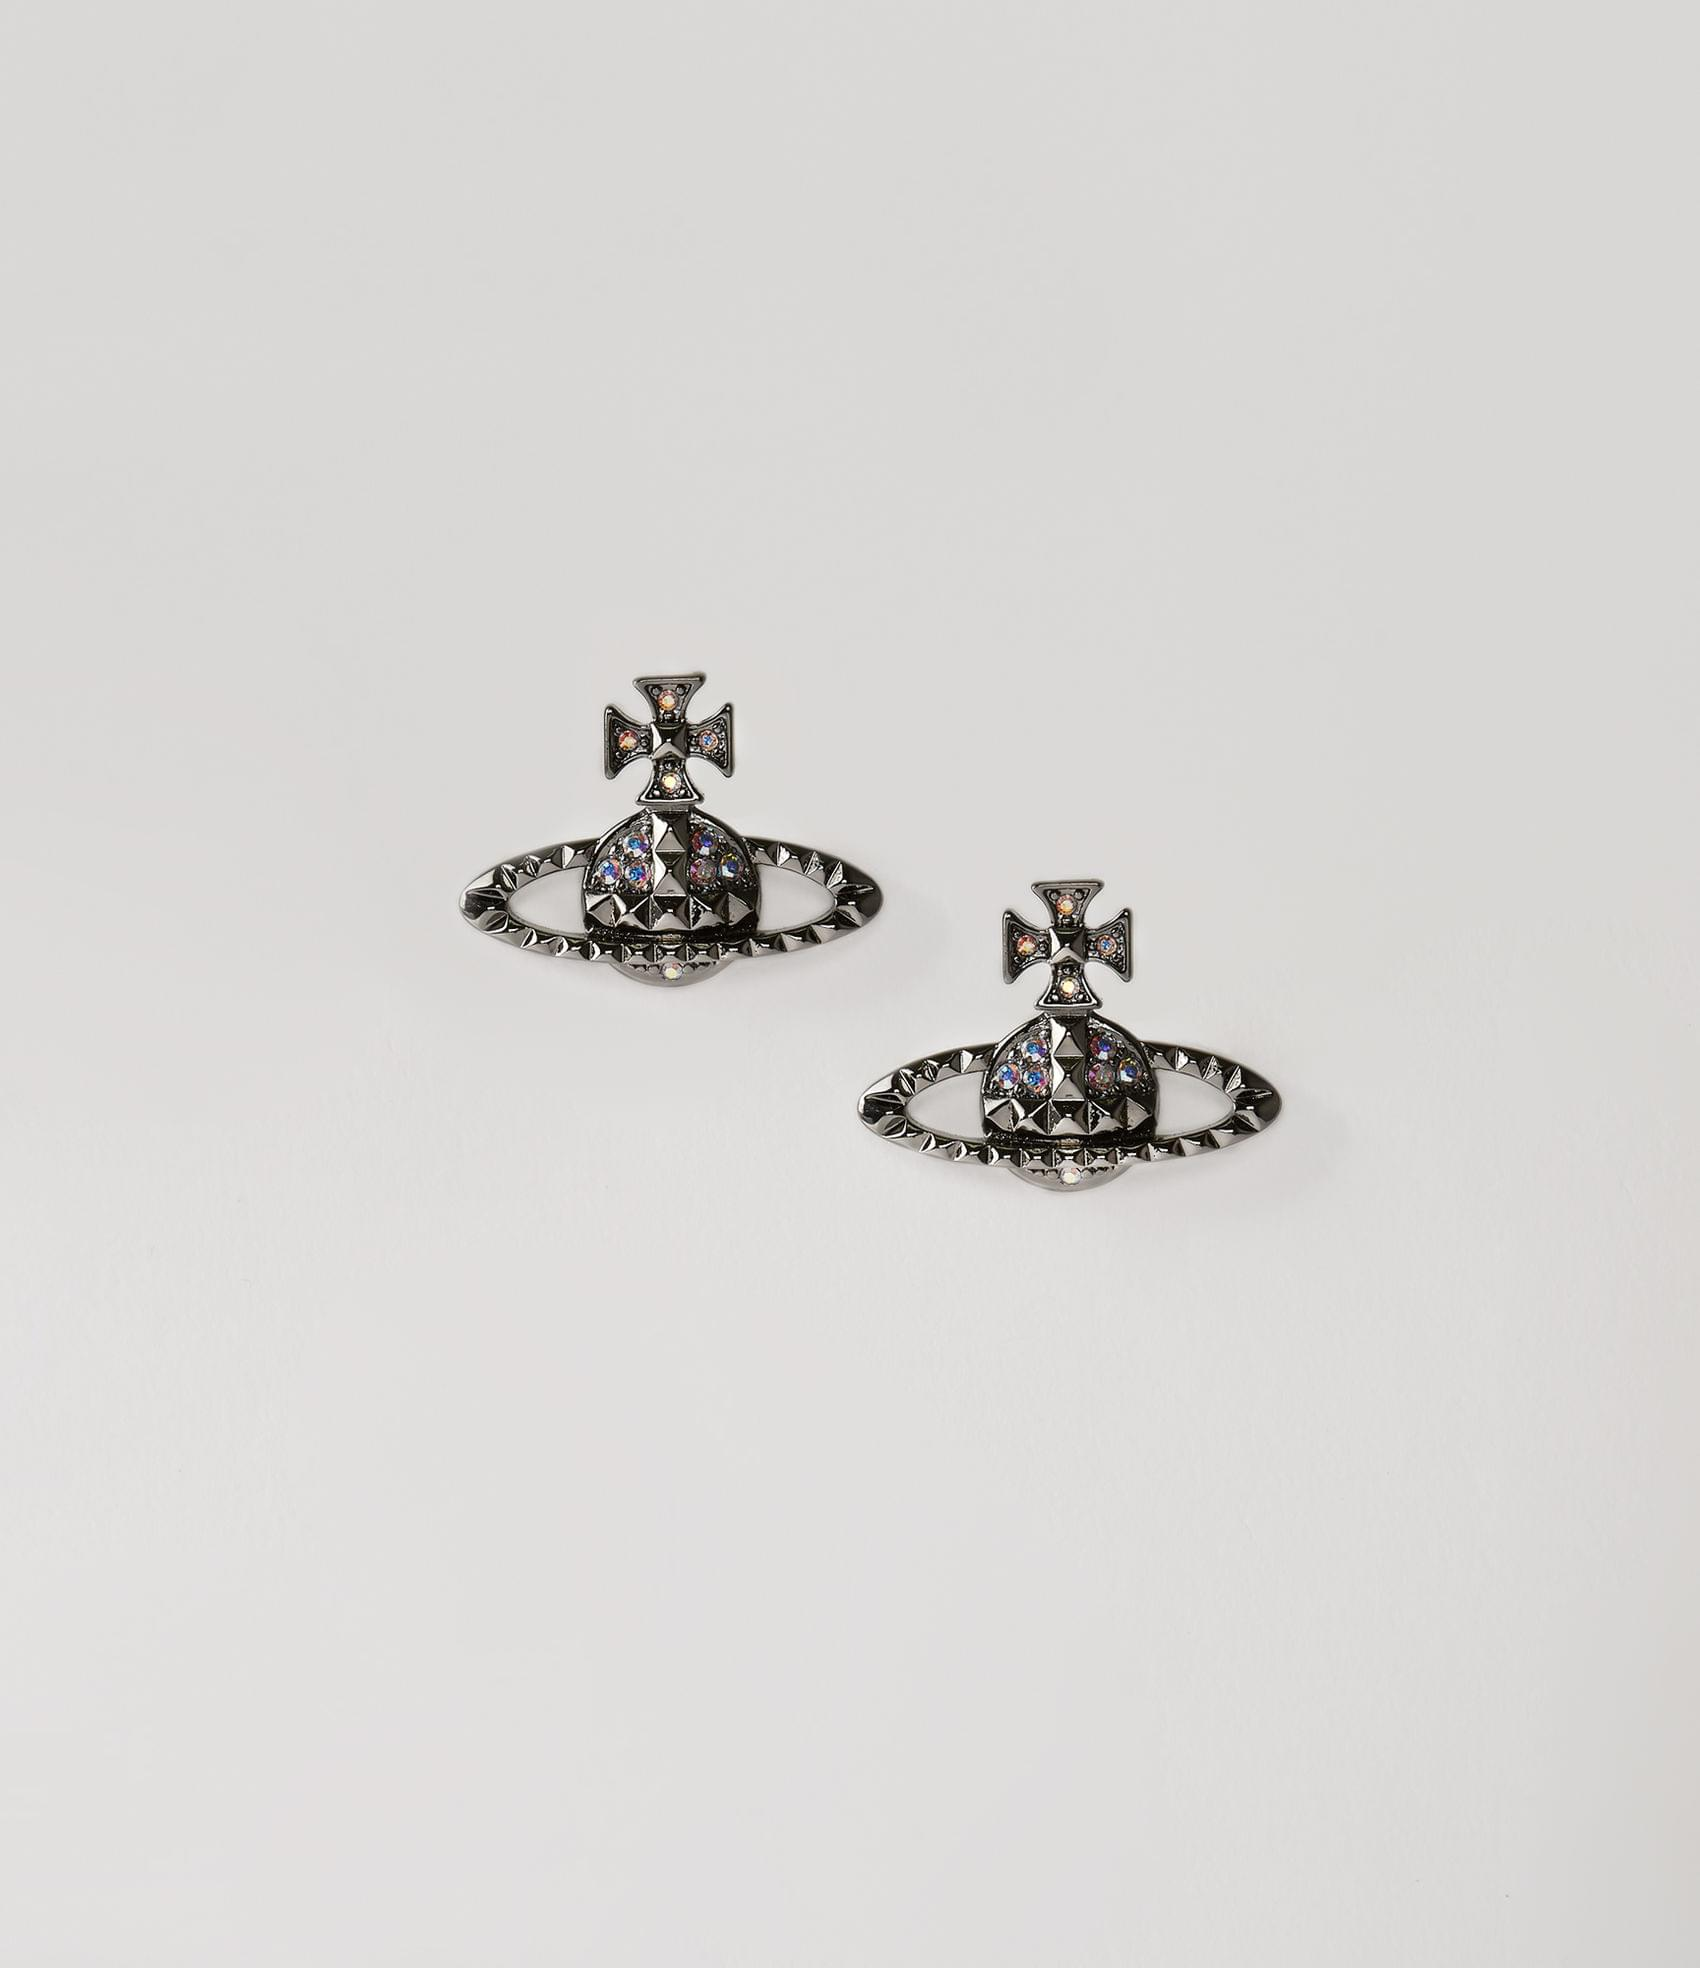 Vivienne Westwood MAYFAIR BAS RELIEF EARRINGS